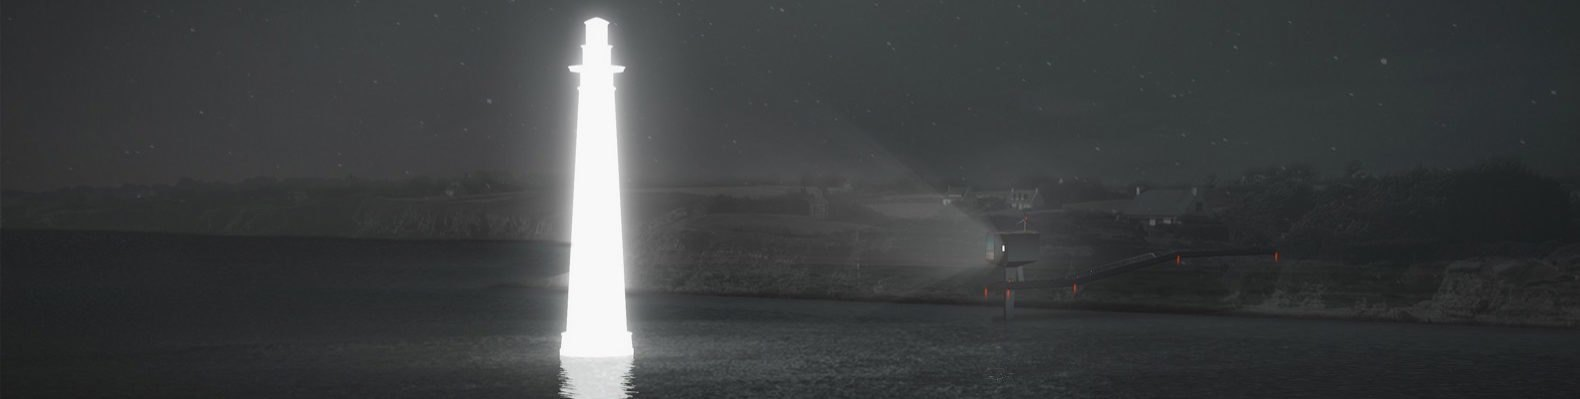 cropped close-up of rendering of small cabin emitting tall hologram of a lighthouse at night